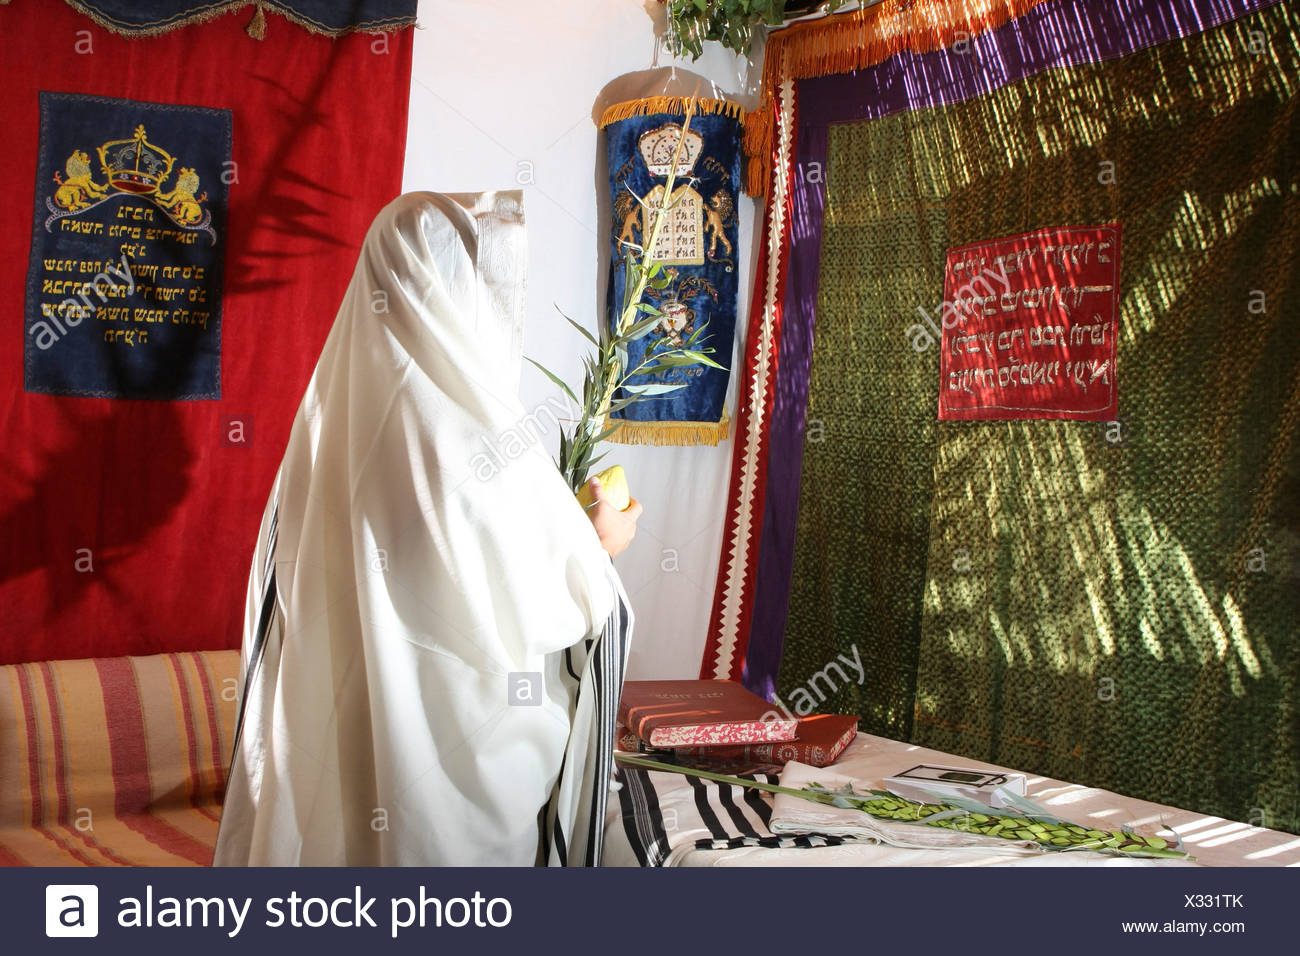 Interior of a Sukkah during Sukkoth A man wrapped in a tallith holding the four species - Stock Image